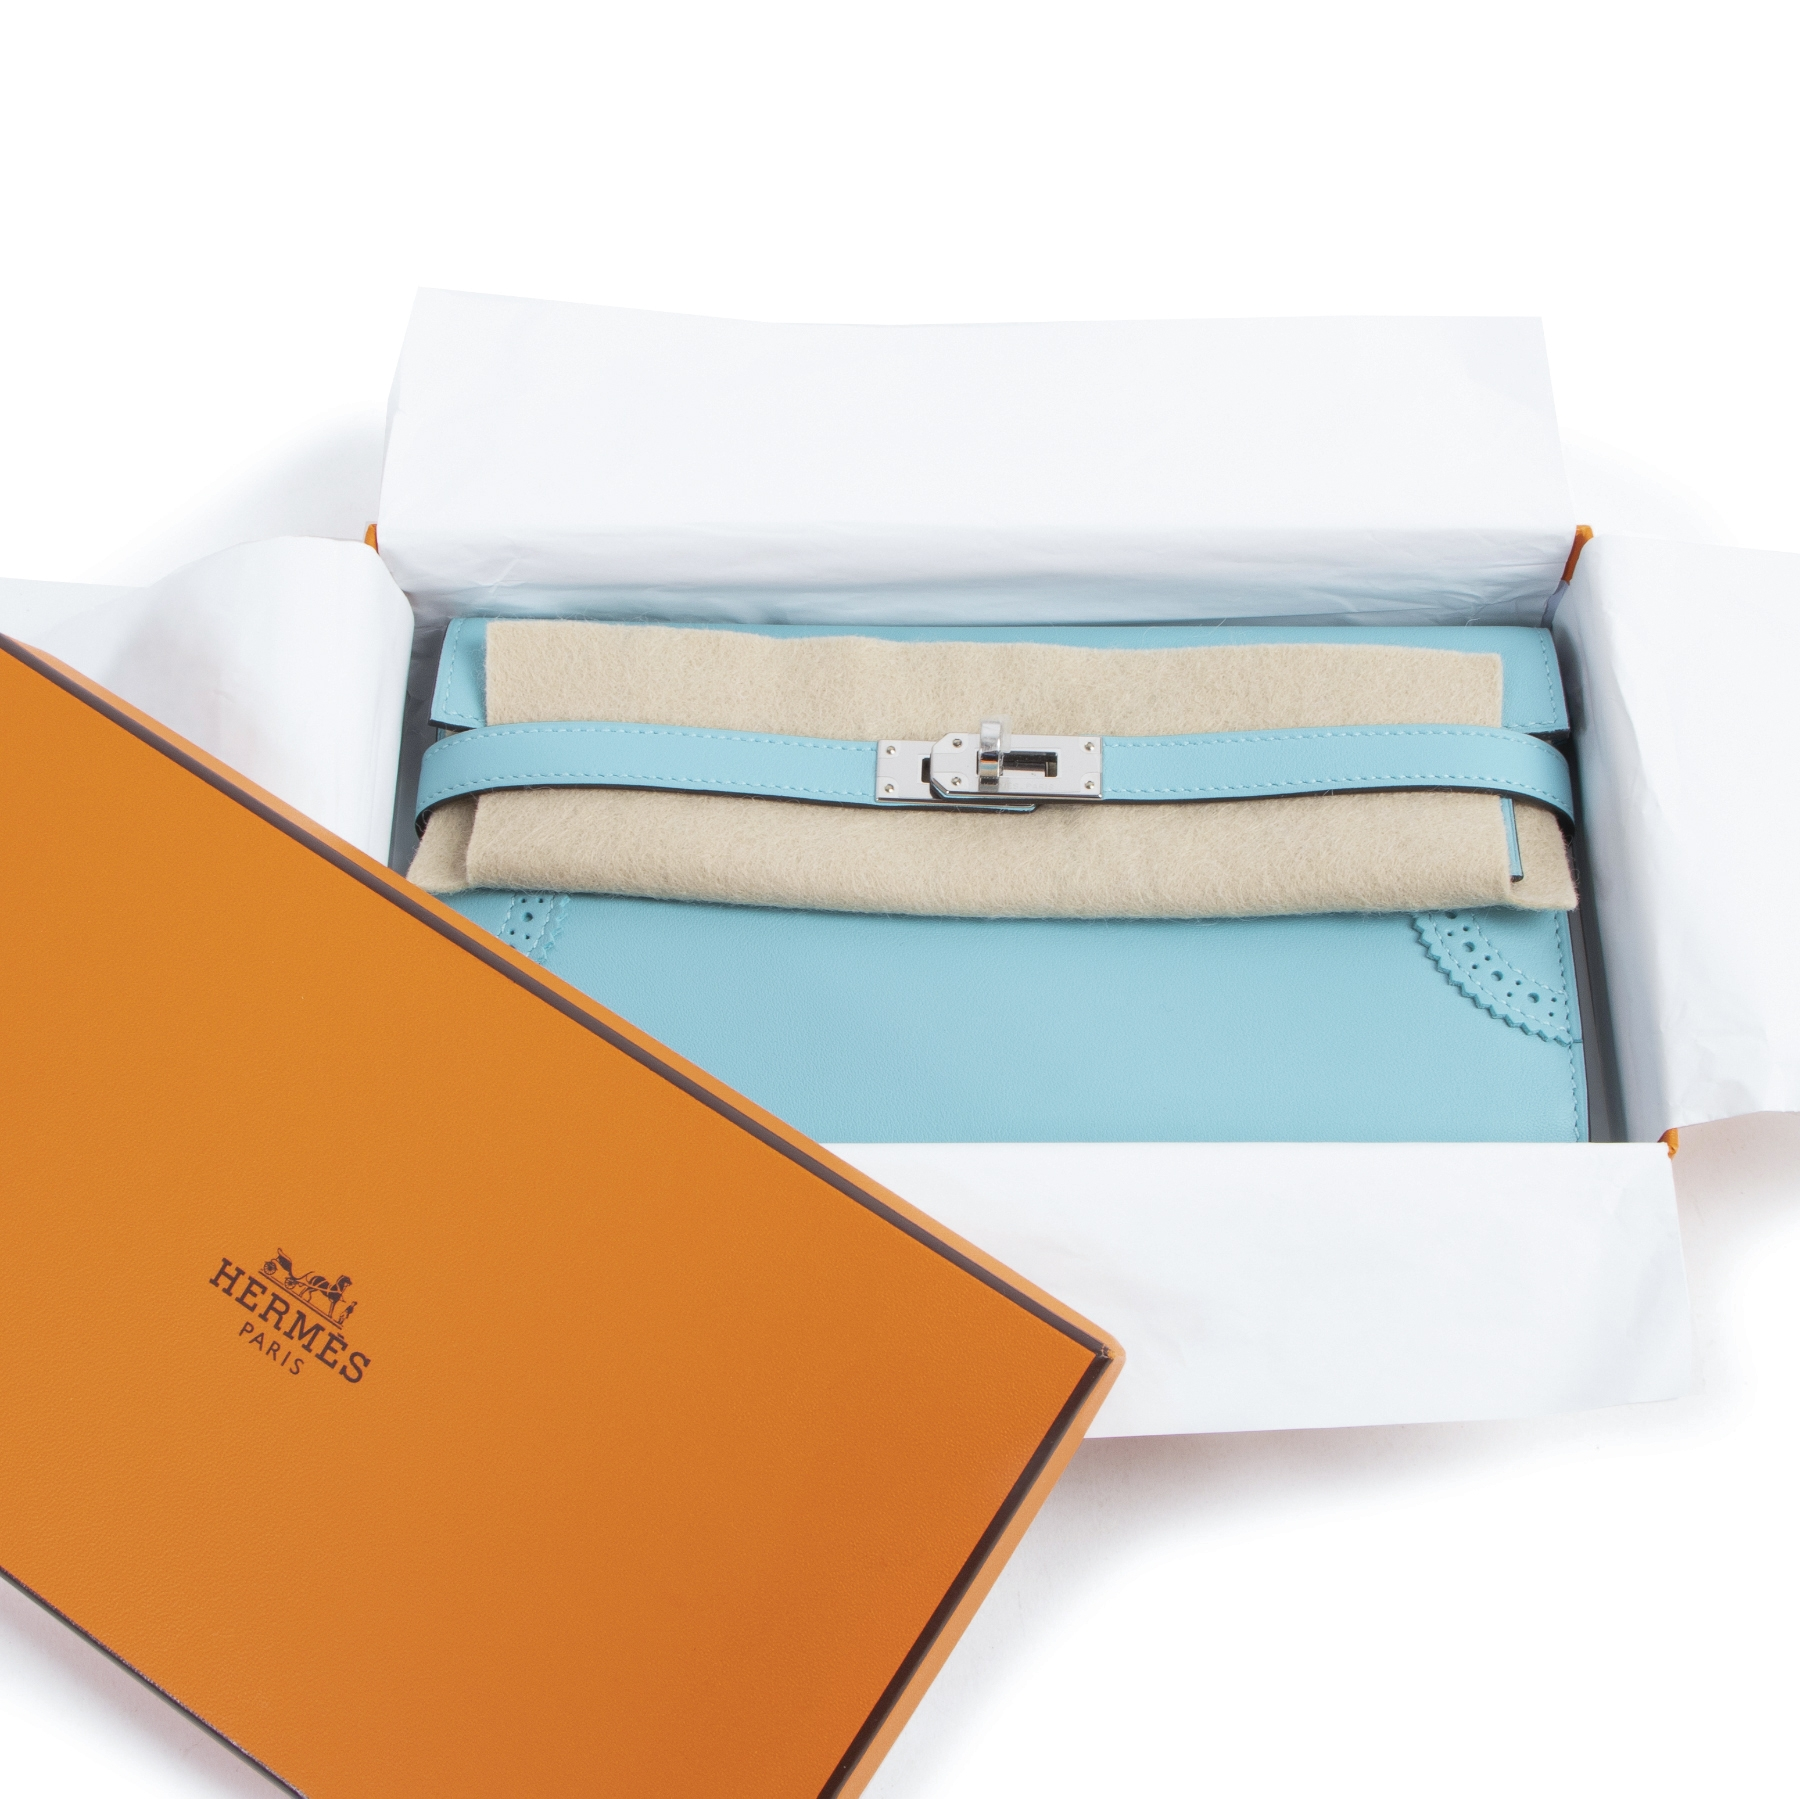 New Hermès Kelly Ghillies portefeuille with beautiful broguing detail on the front.  The wallet is made in charming Blue Atole. A bright and playful color that is enhanced by the smooth surface of the Swift leather.   It comes with invoice and in its orig